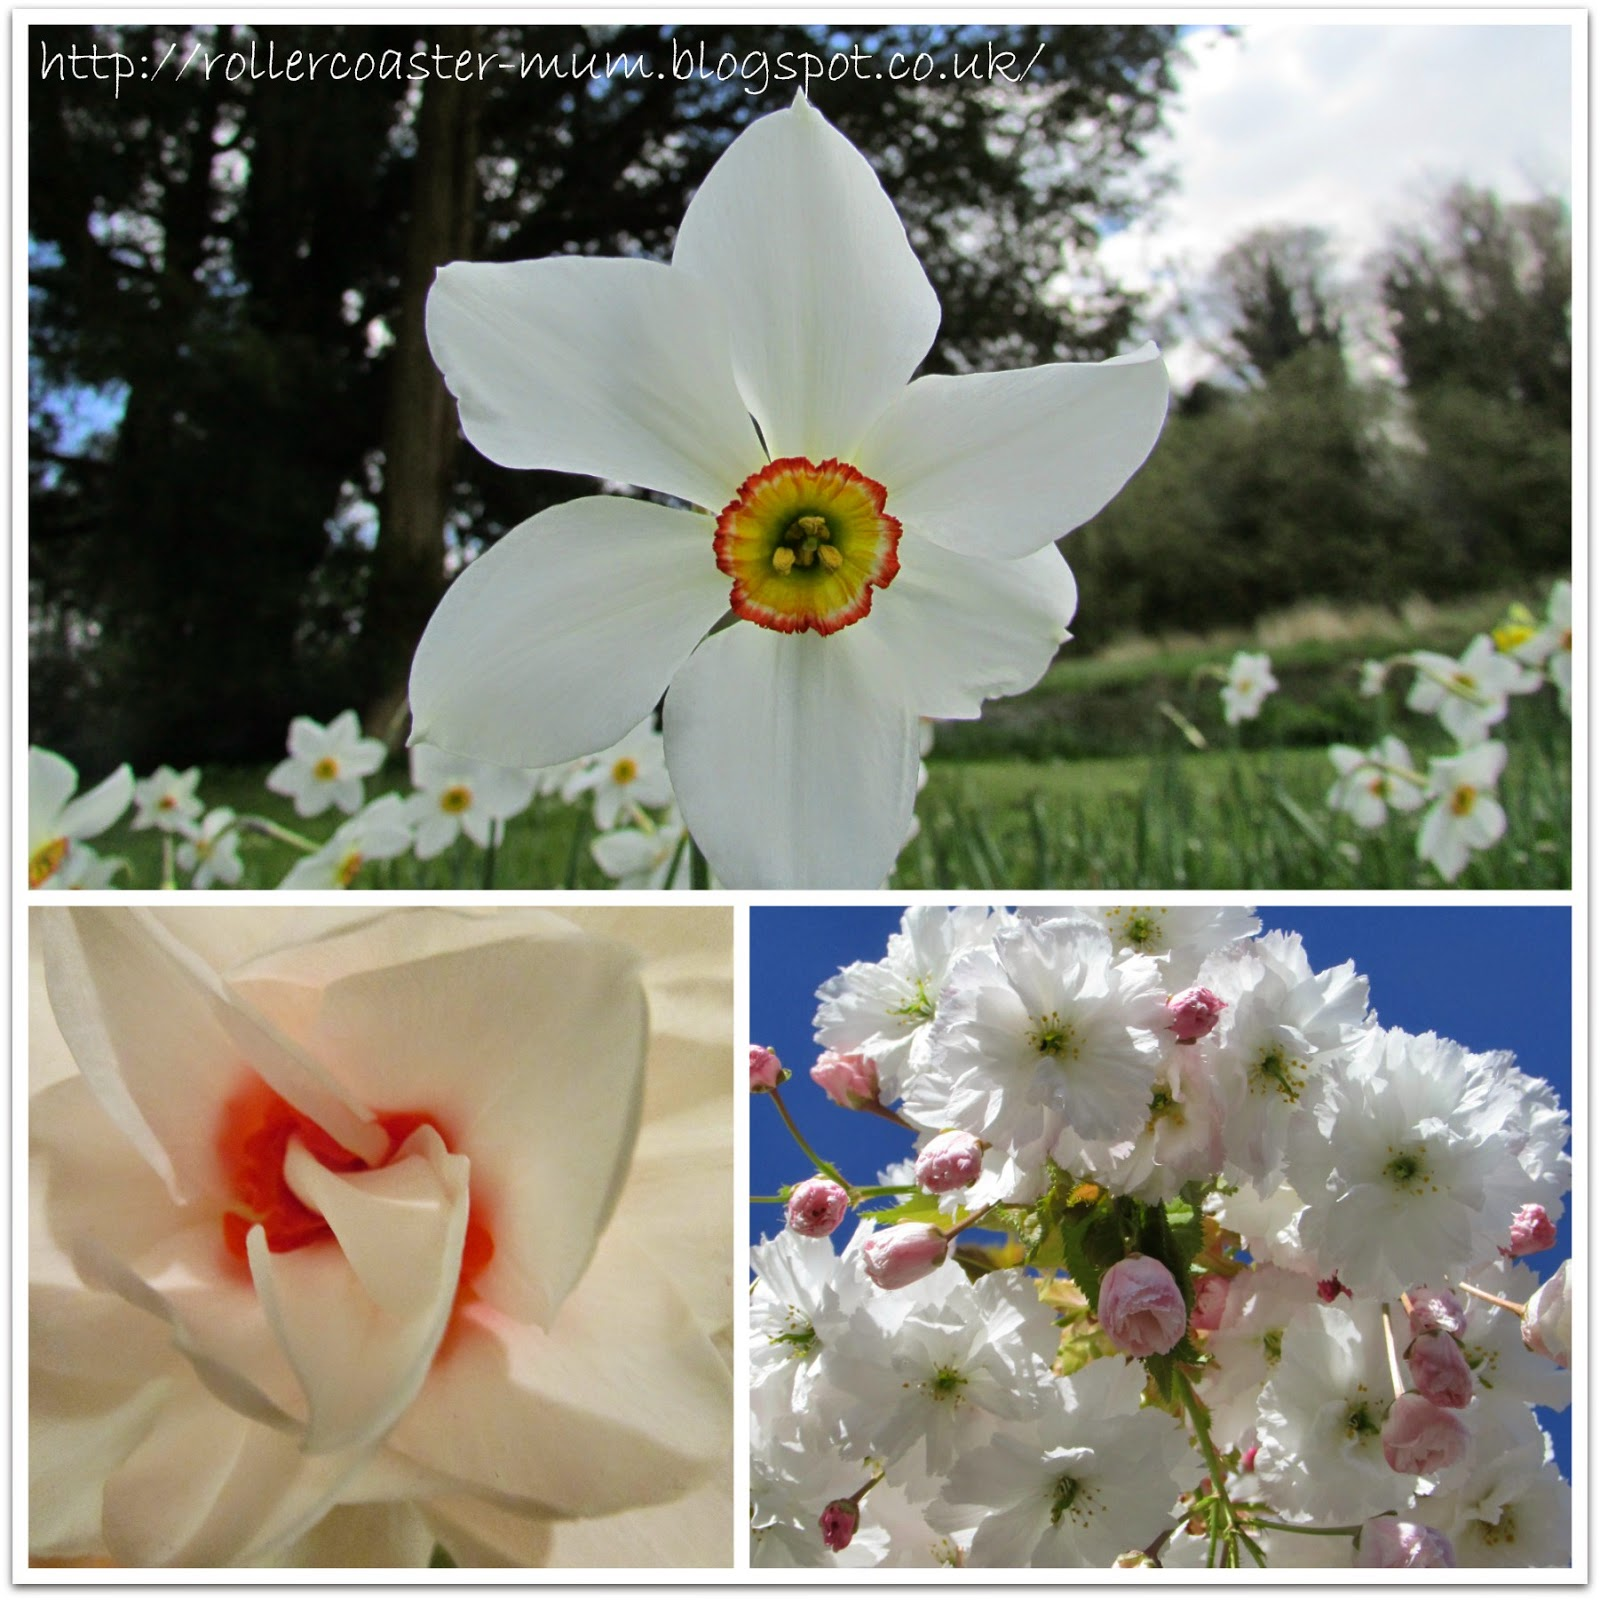 Spring flowers- narcissus and pink blossom